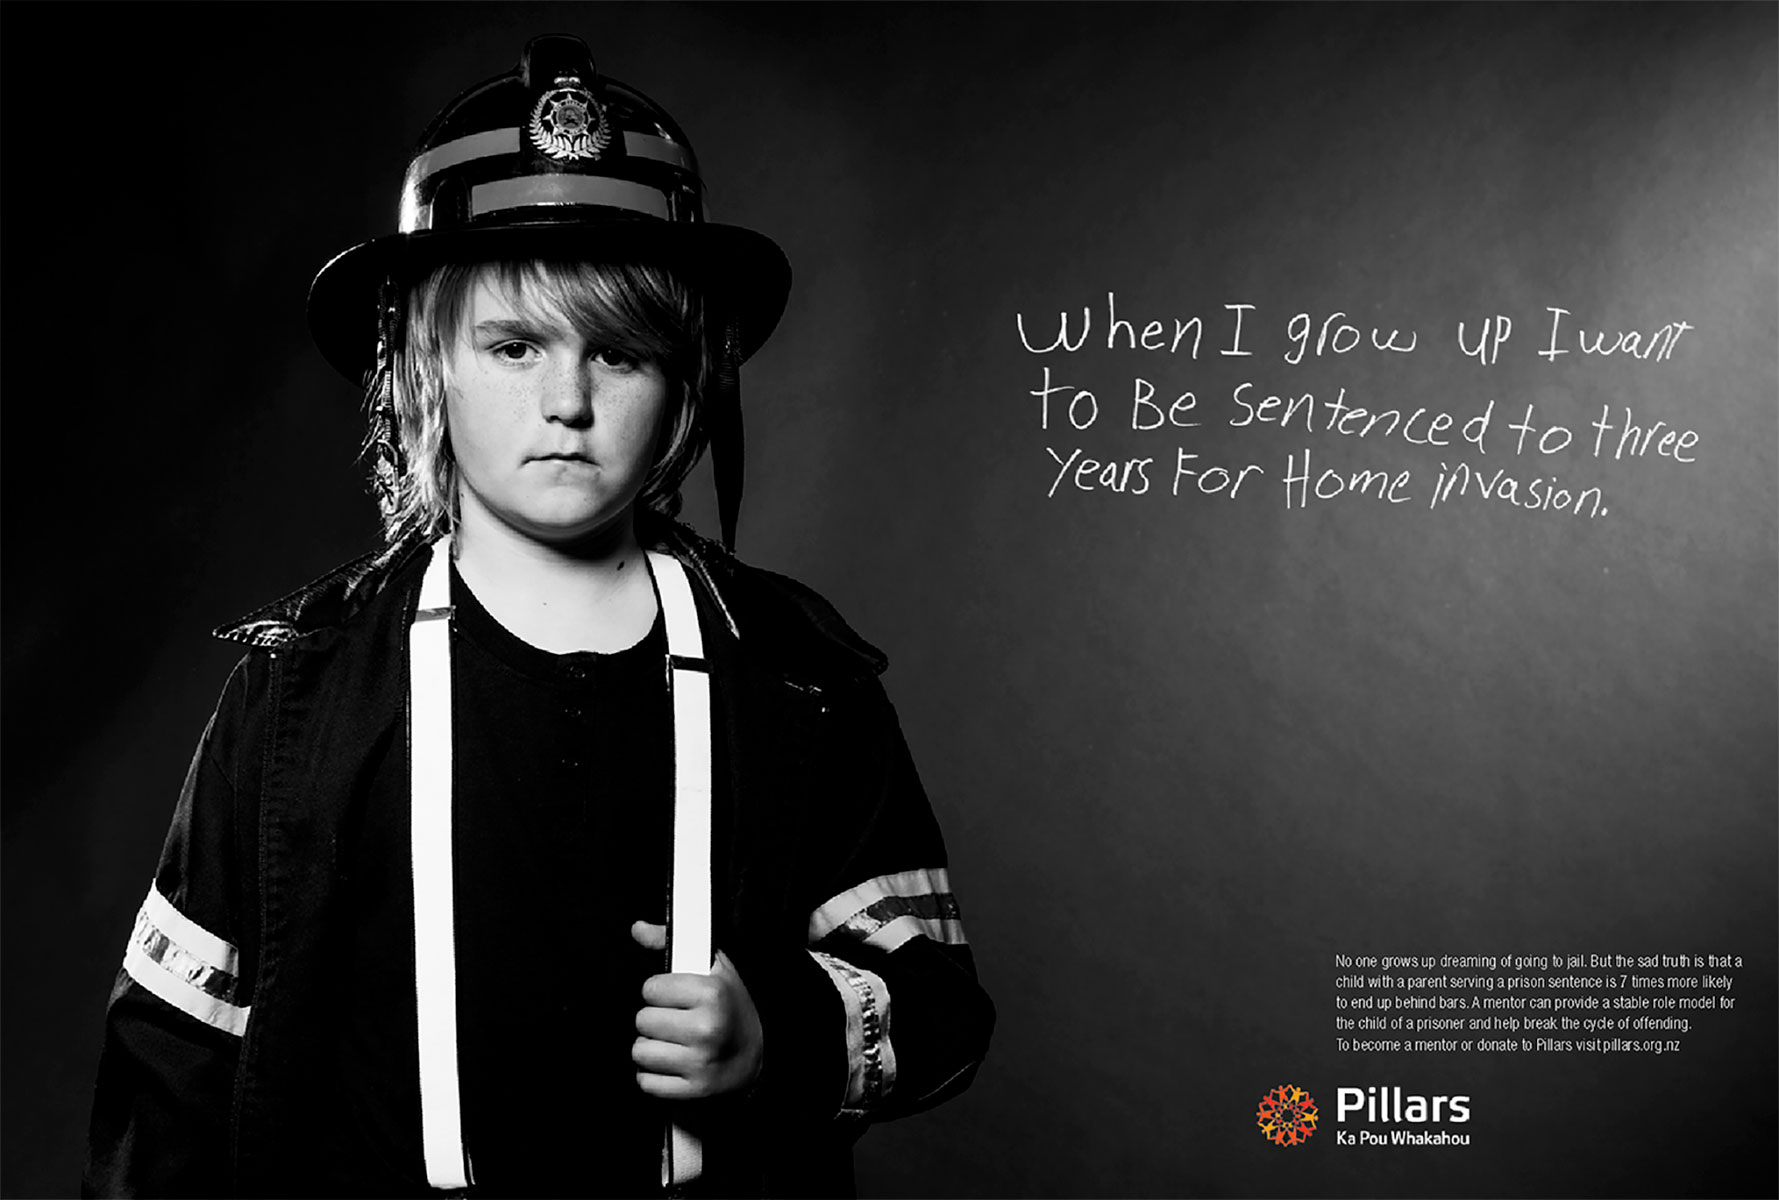 VICKI LEOPOLD - Pillars, Children of Prisoners Campaign